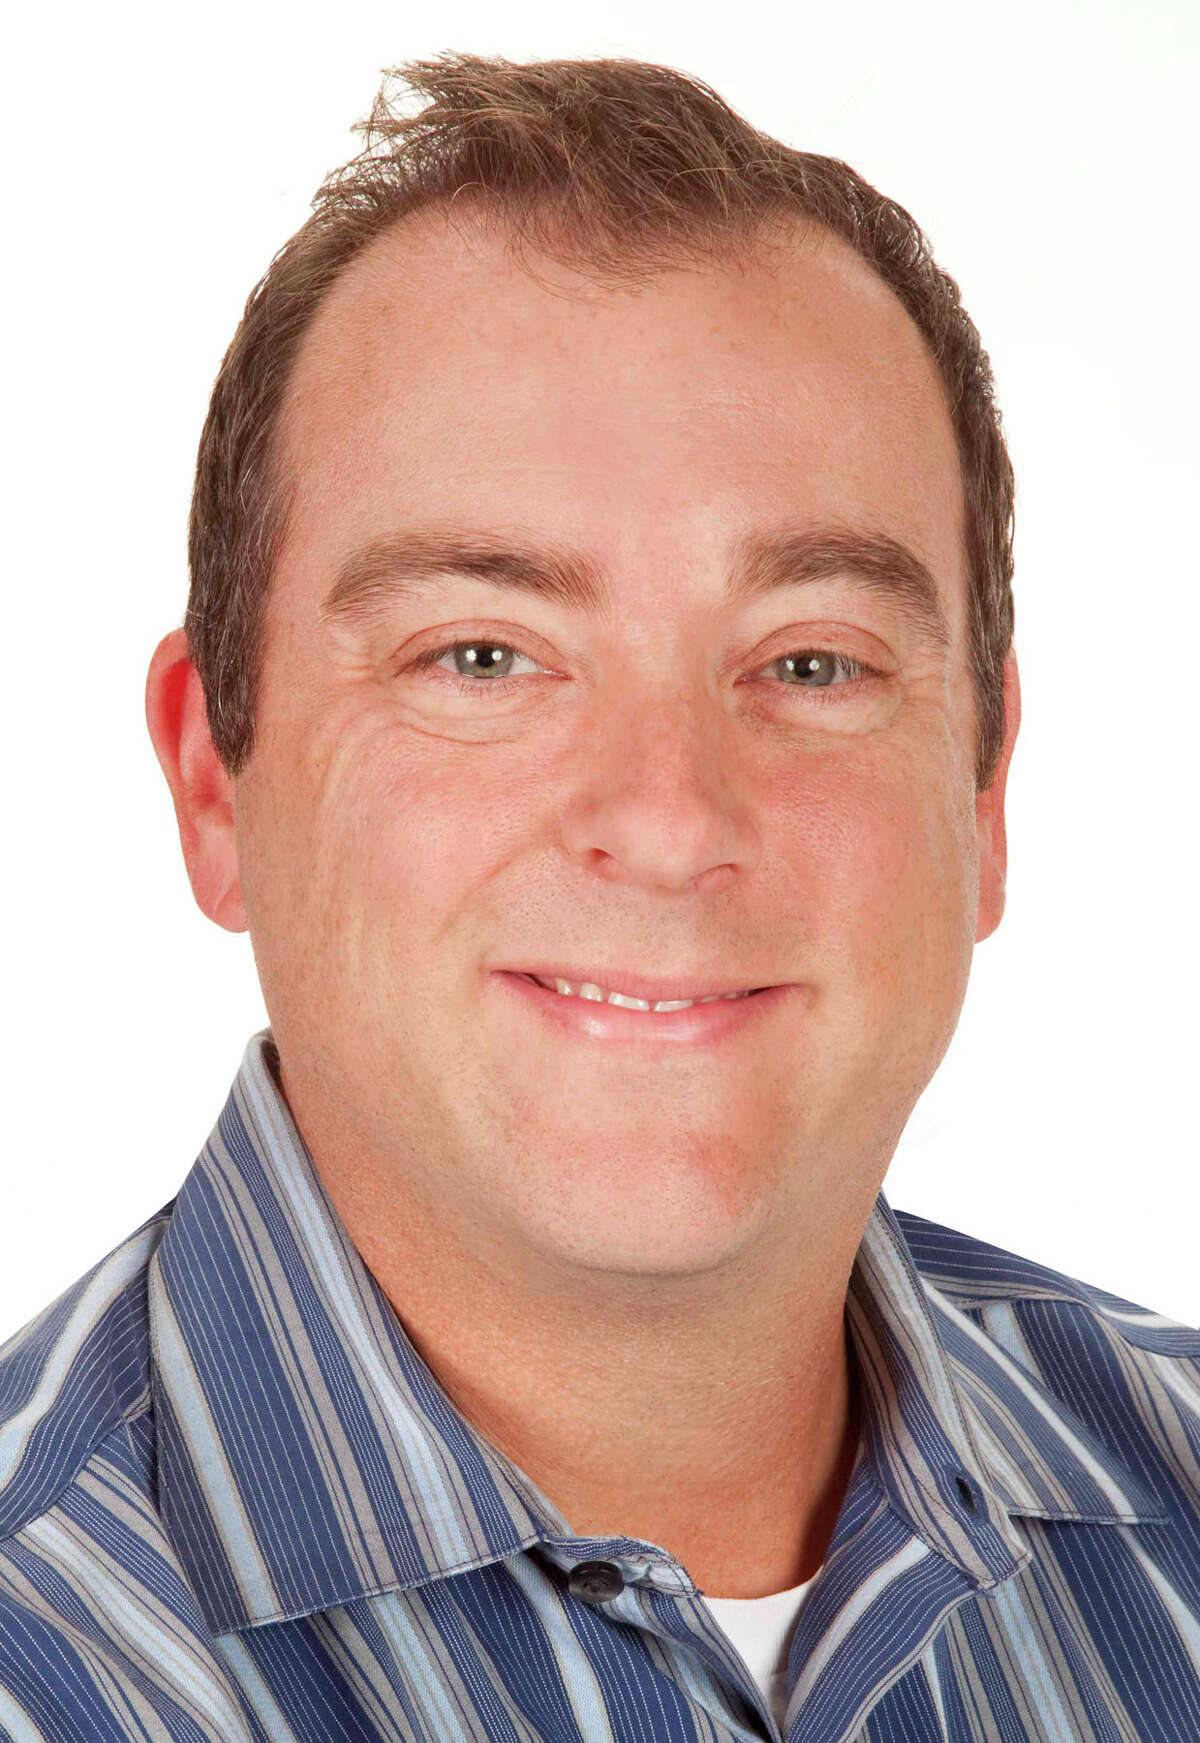 Brad Sherman has been hired as the director of recruitment advertising for HC Media Group.